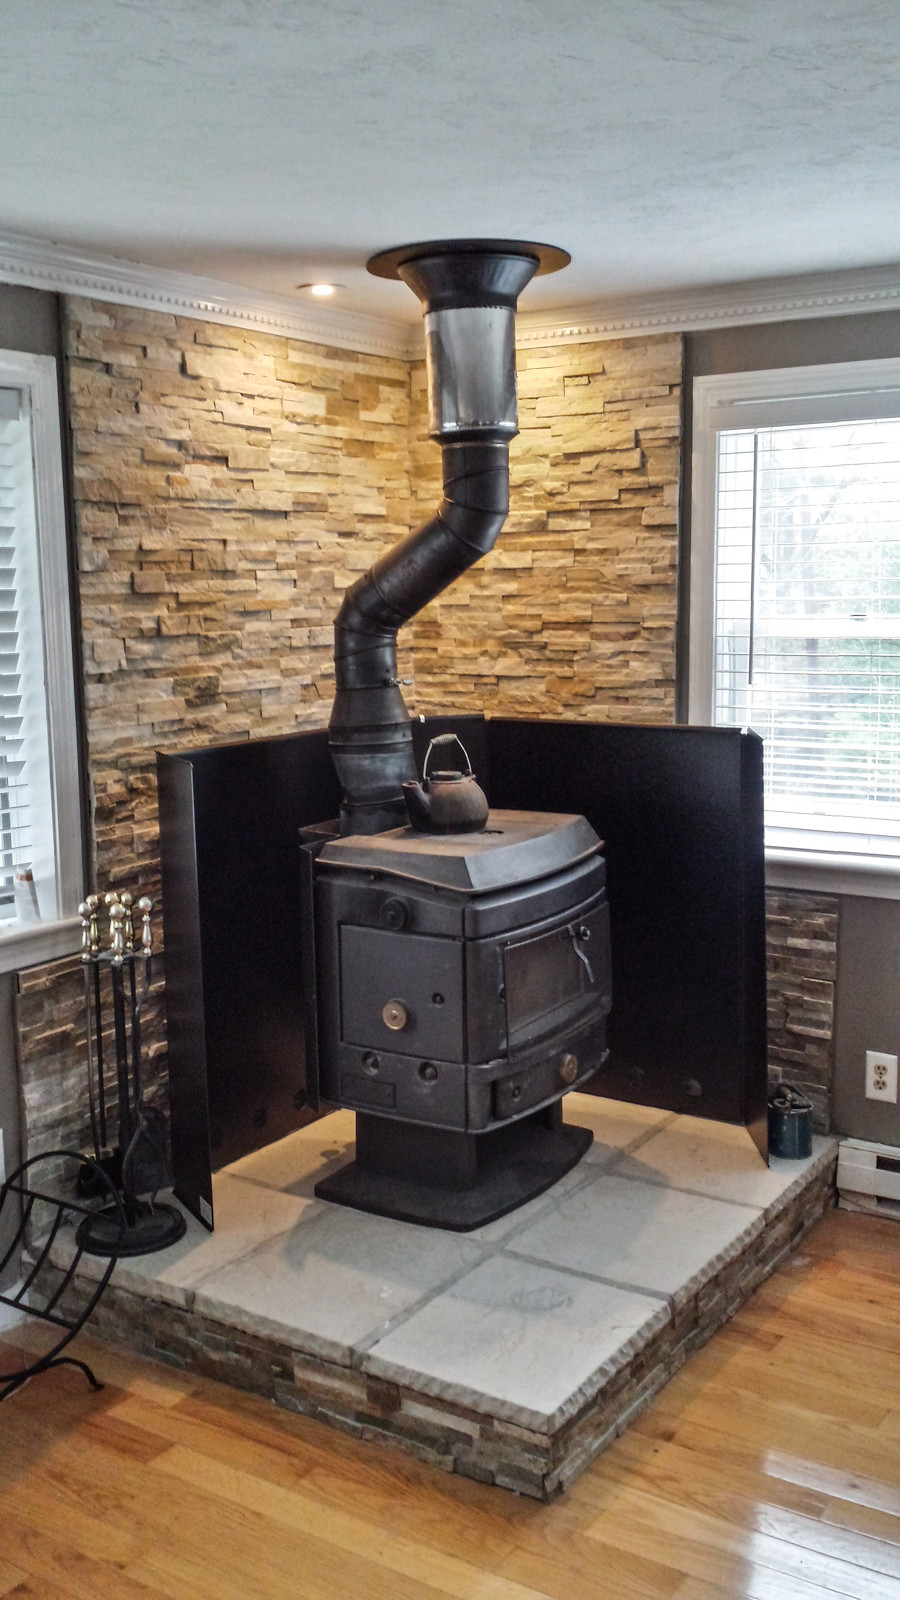 Wood stove surround ideas - Wood Stove Surround Ideas Wood Stove Installed With Heat Shield